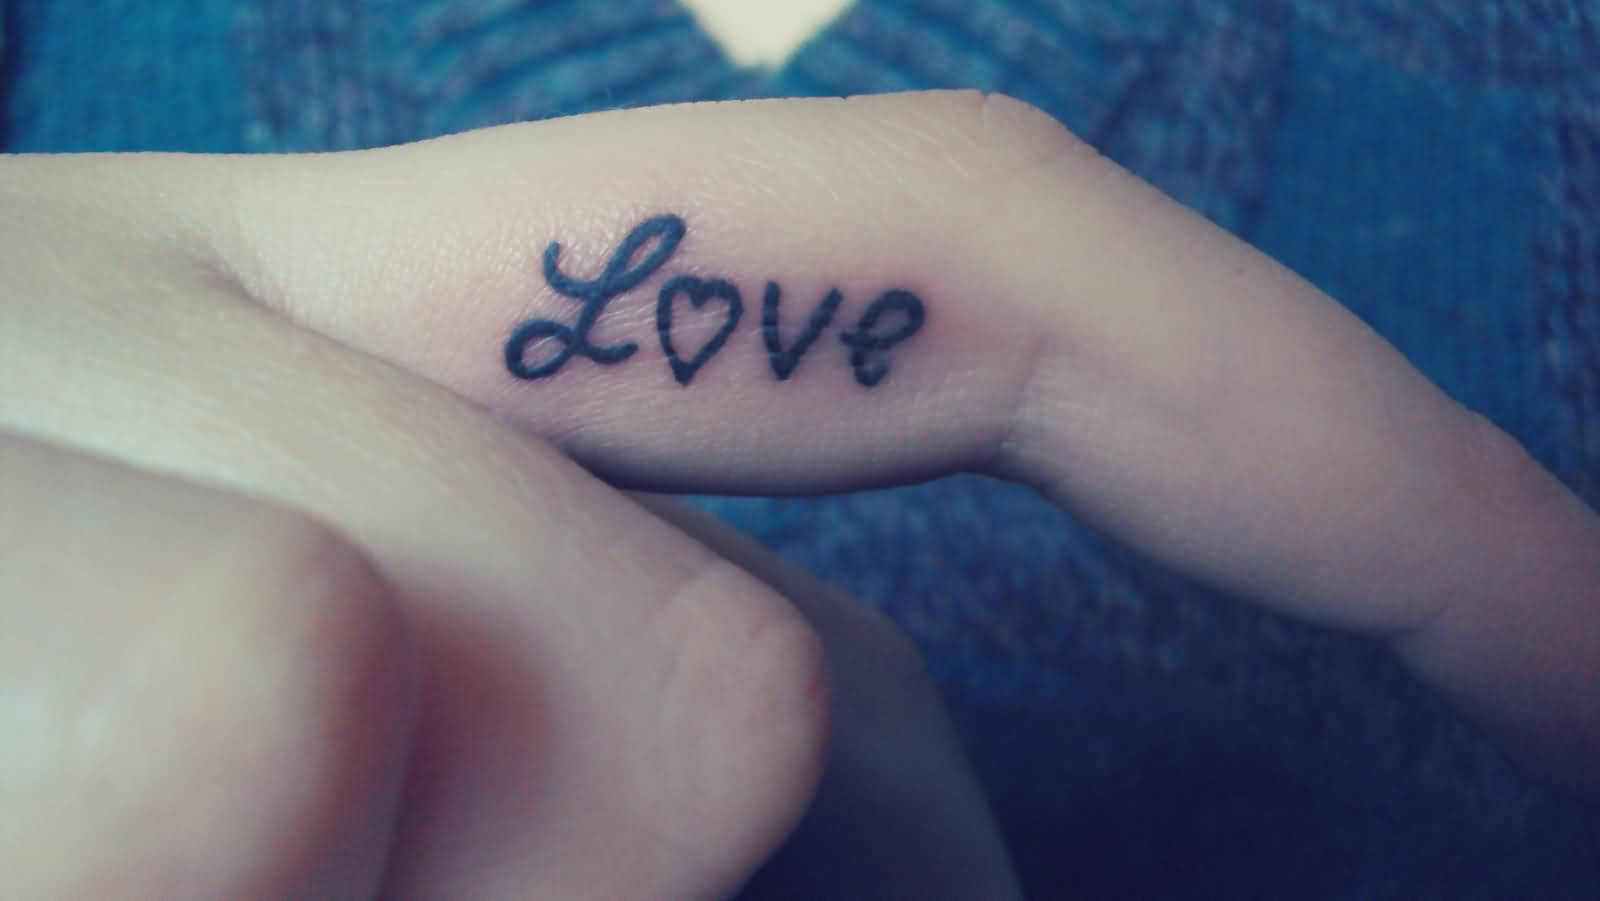 Love Heart Nice Text Tattoo On Finger